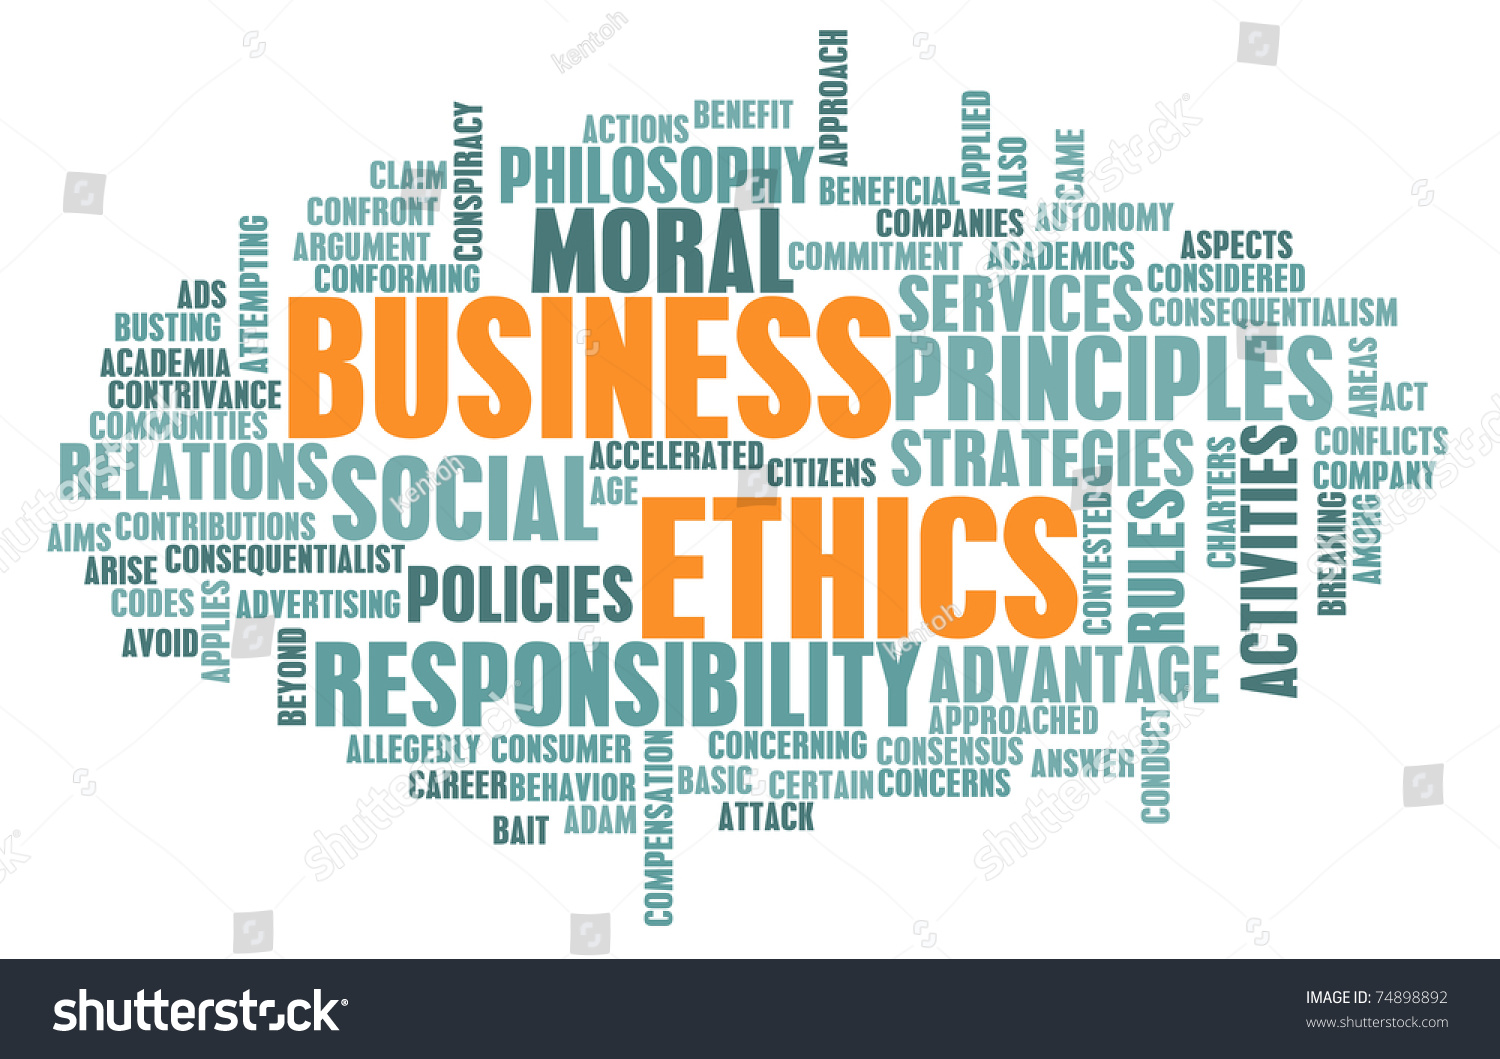 social work values and ethics essay Dissonance between personal and professional values: resolution of an ethical dilemma   journal of social work values and ethics, volume 8, number 2 (2011.